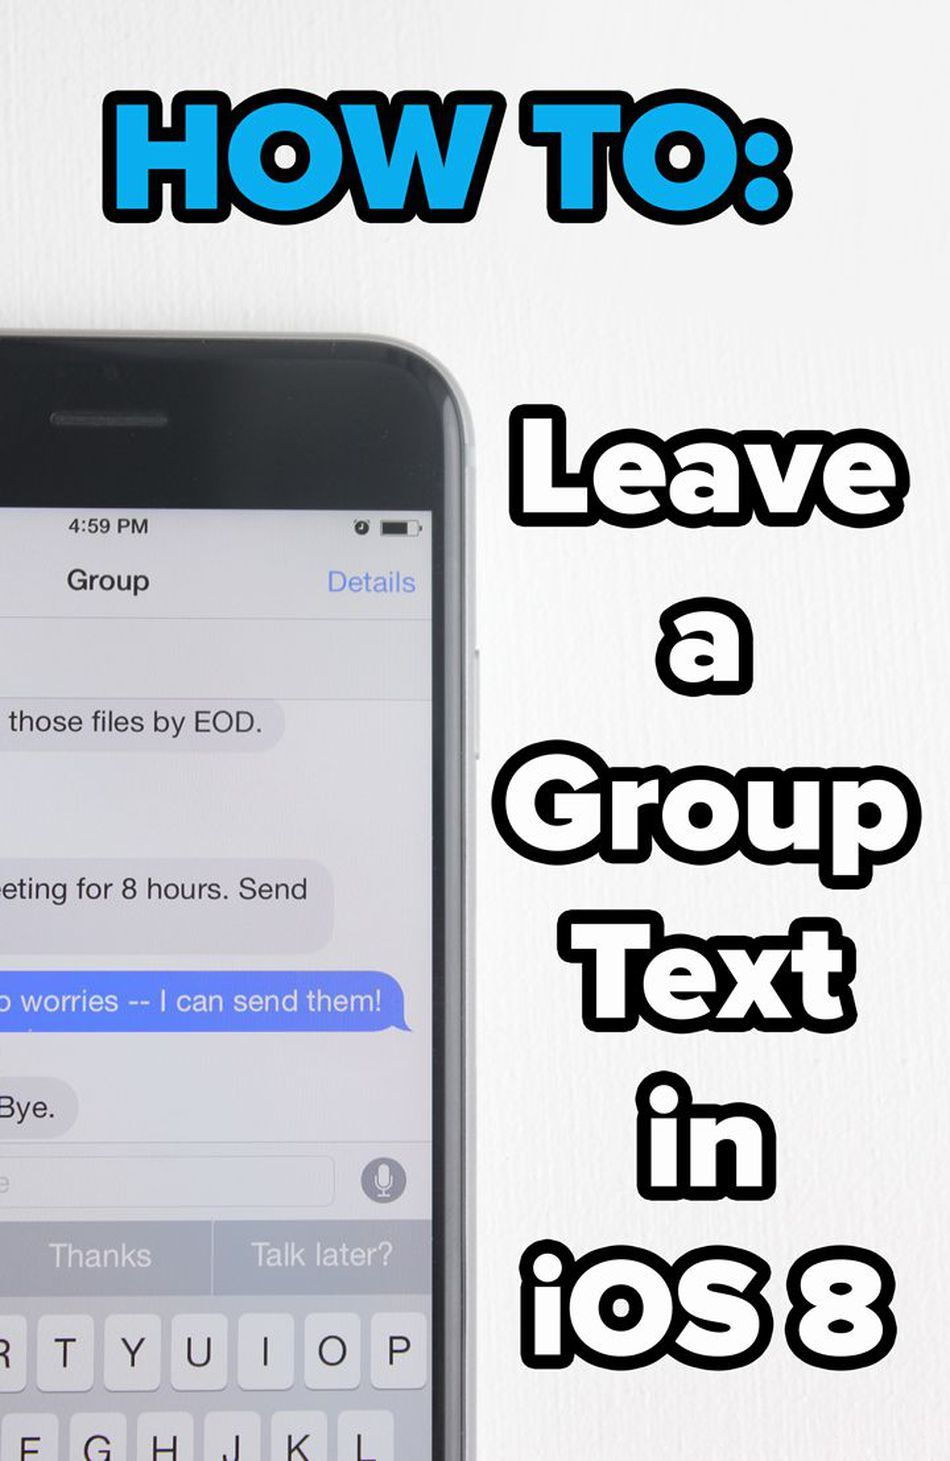 How To Get Out Of Annoying Group Texts In Ios 8 Iphone Hacks Group Text Iphone Info